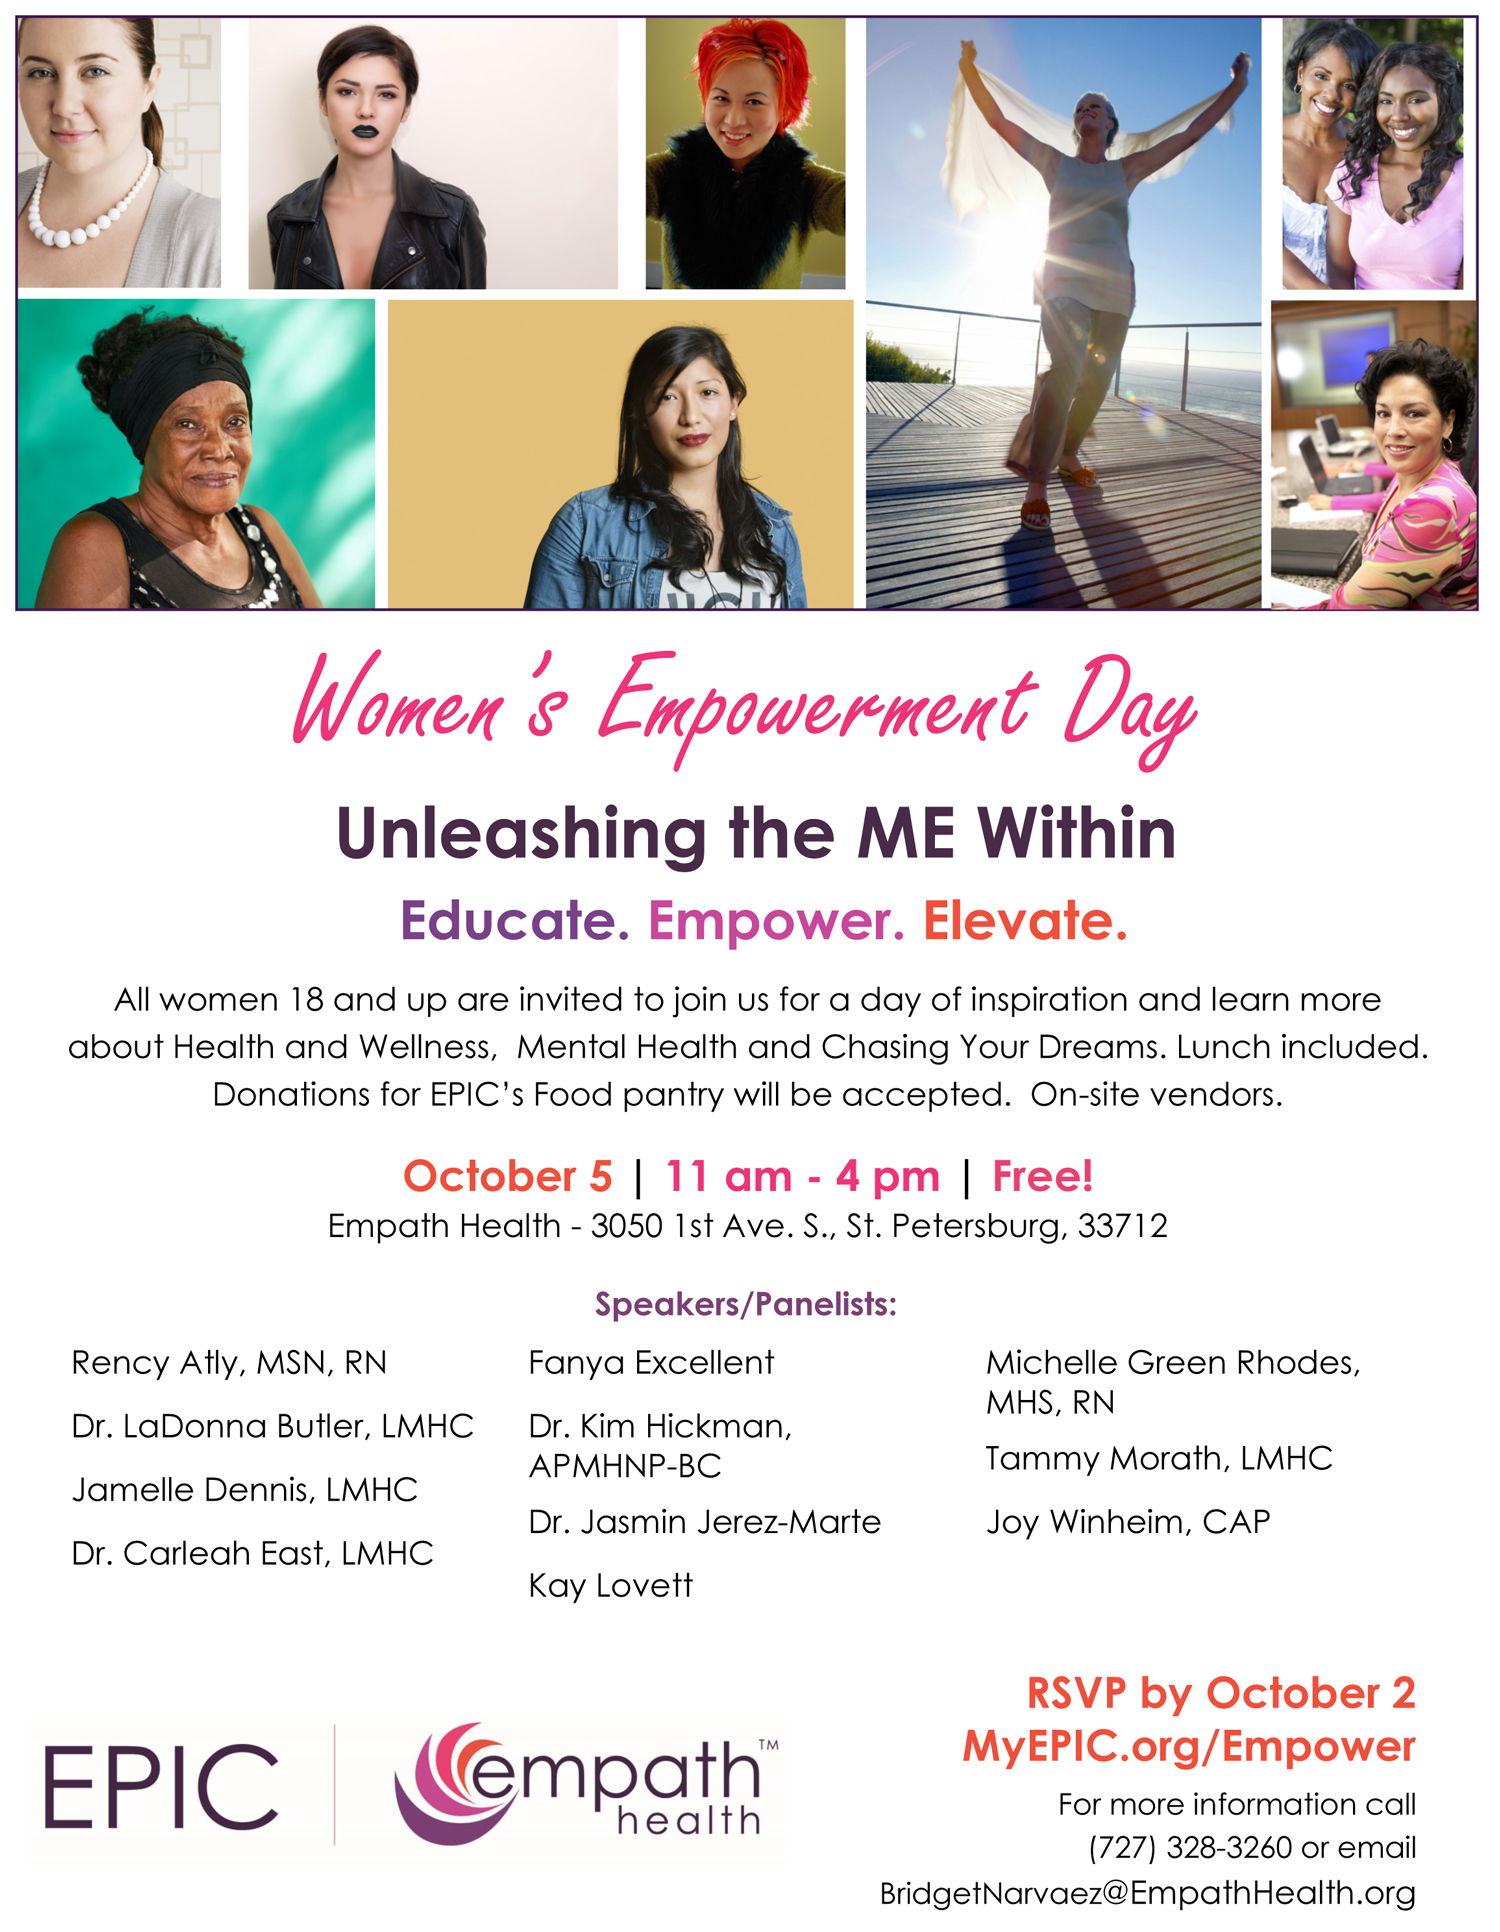 Women's Empowerment Day @ EPIC ASAP Campus at Empath Health